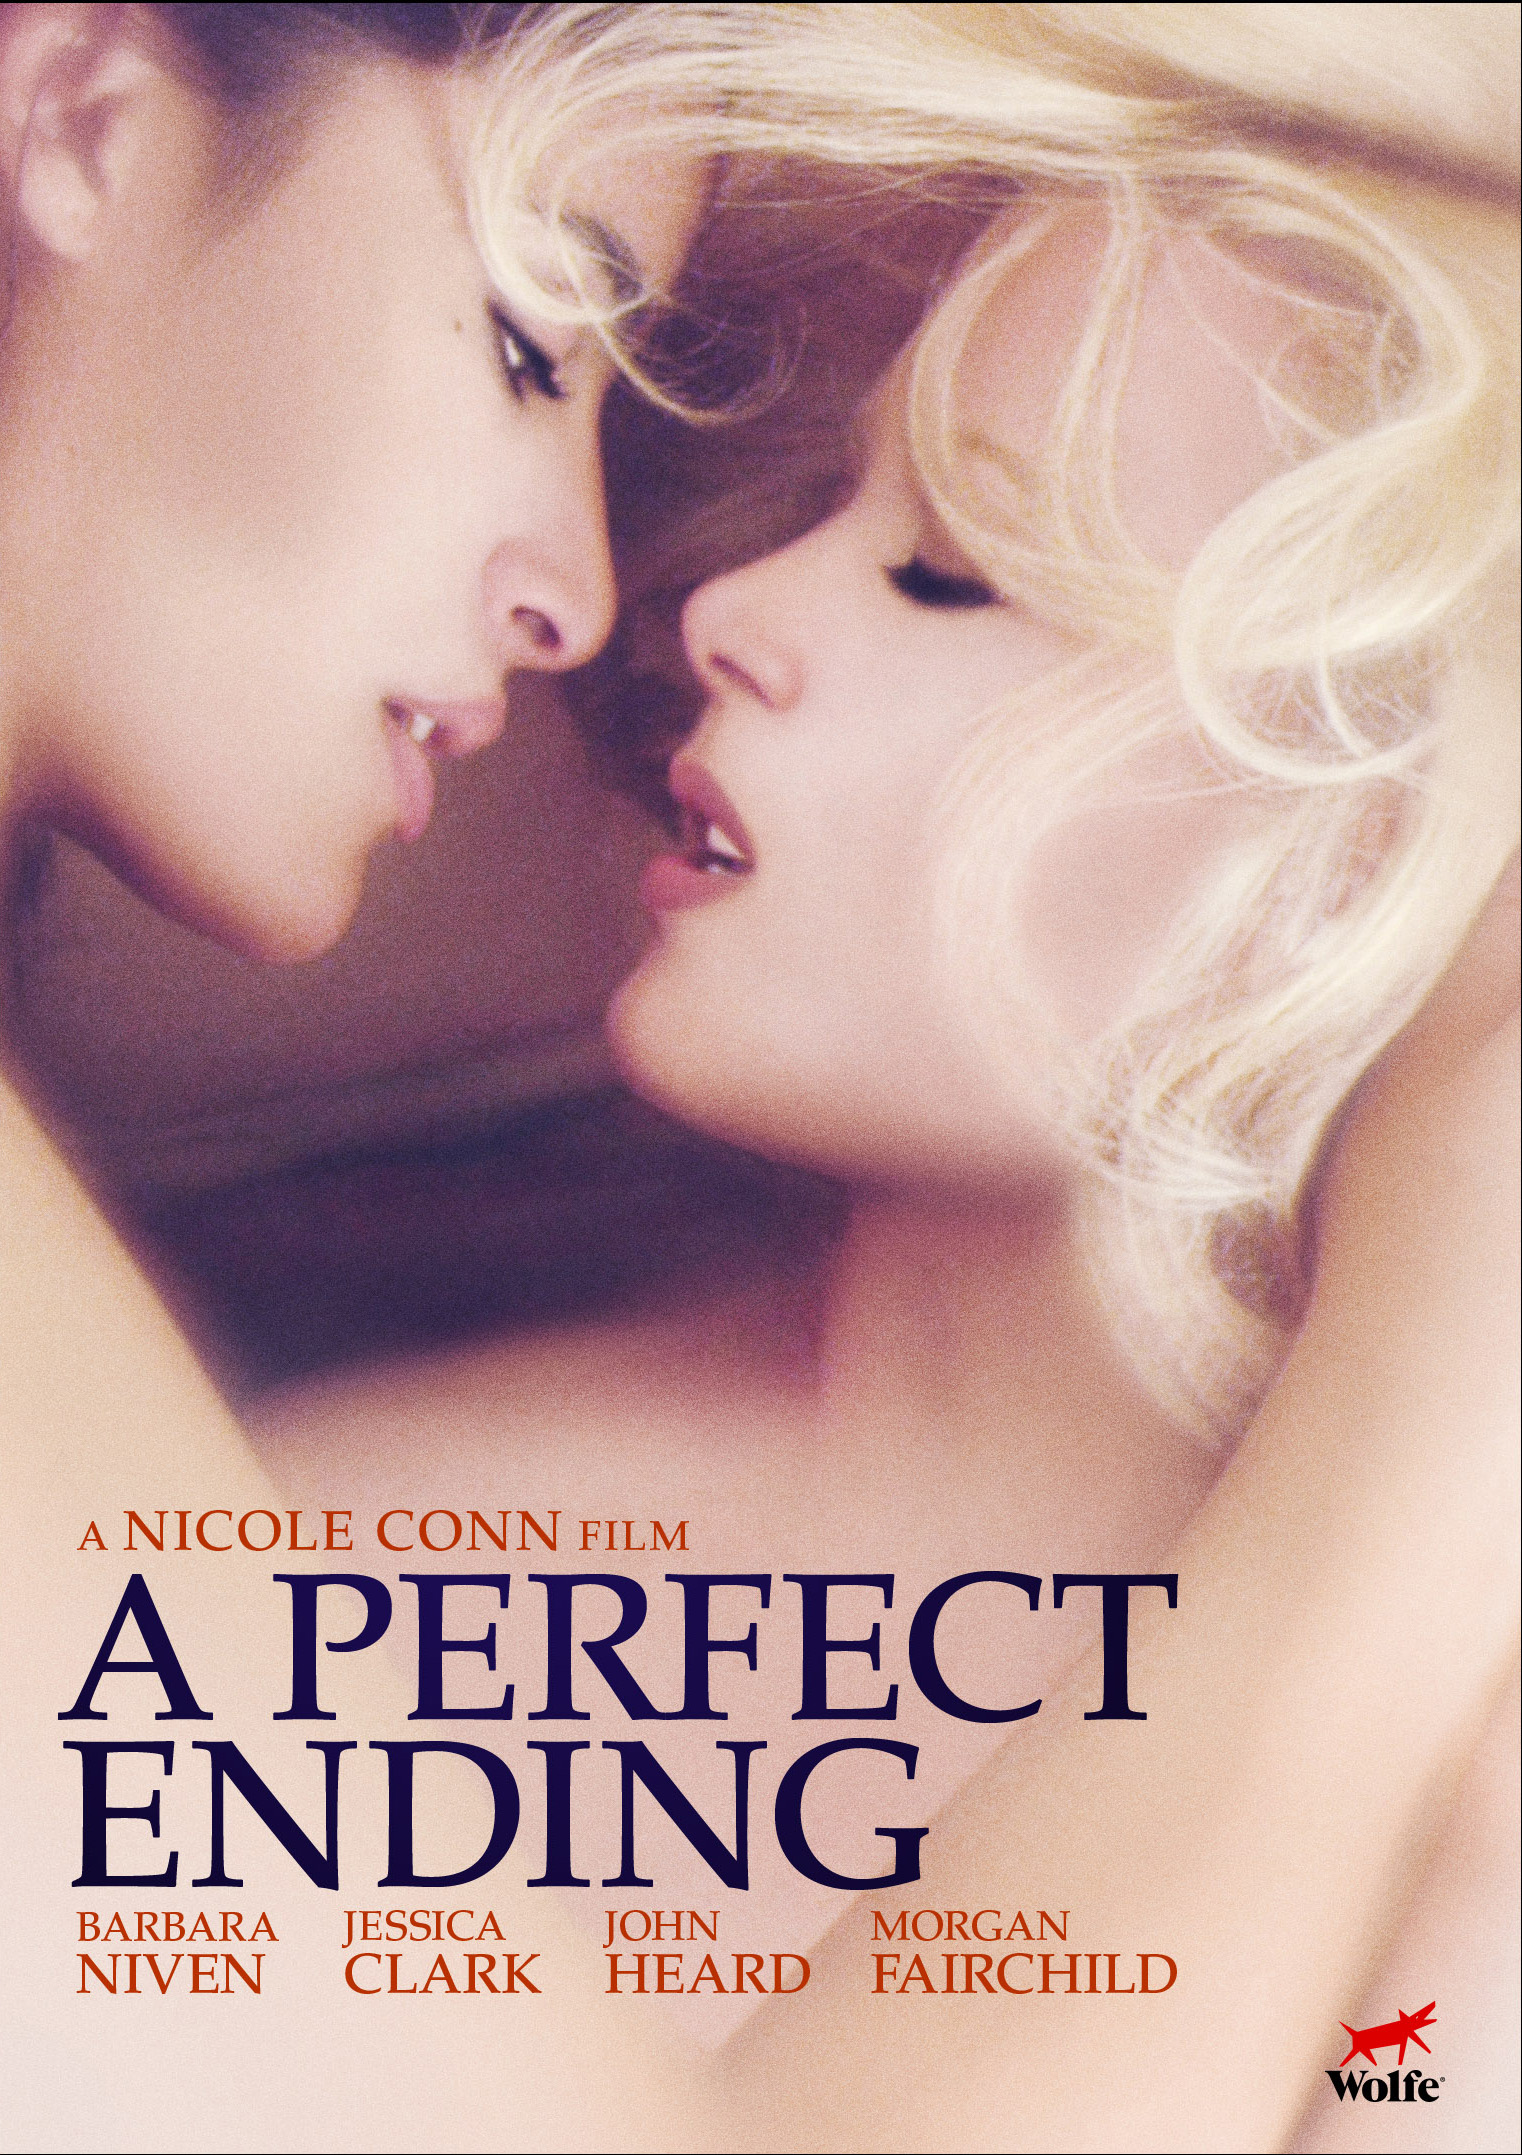 Image result for a perfect ending movie poster